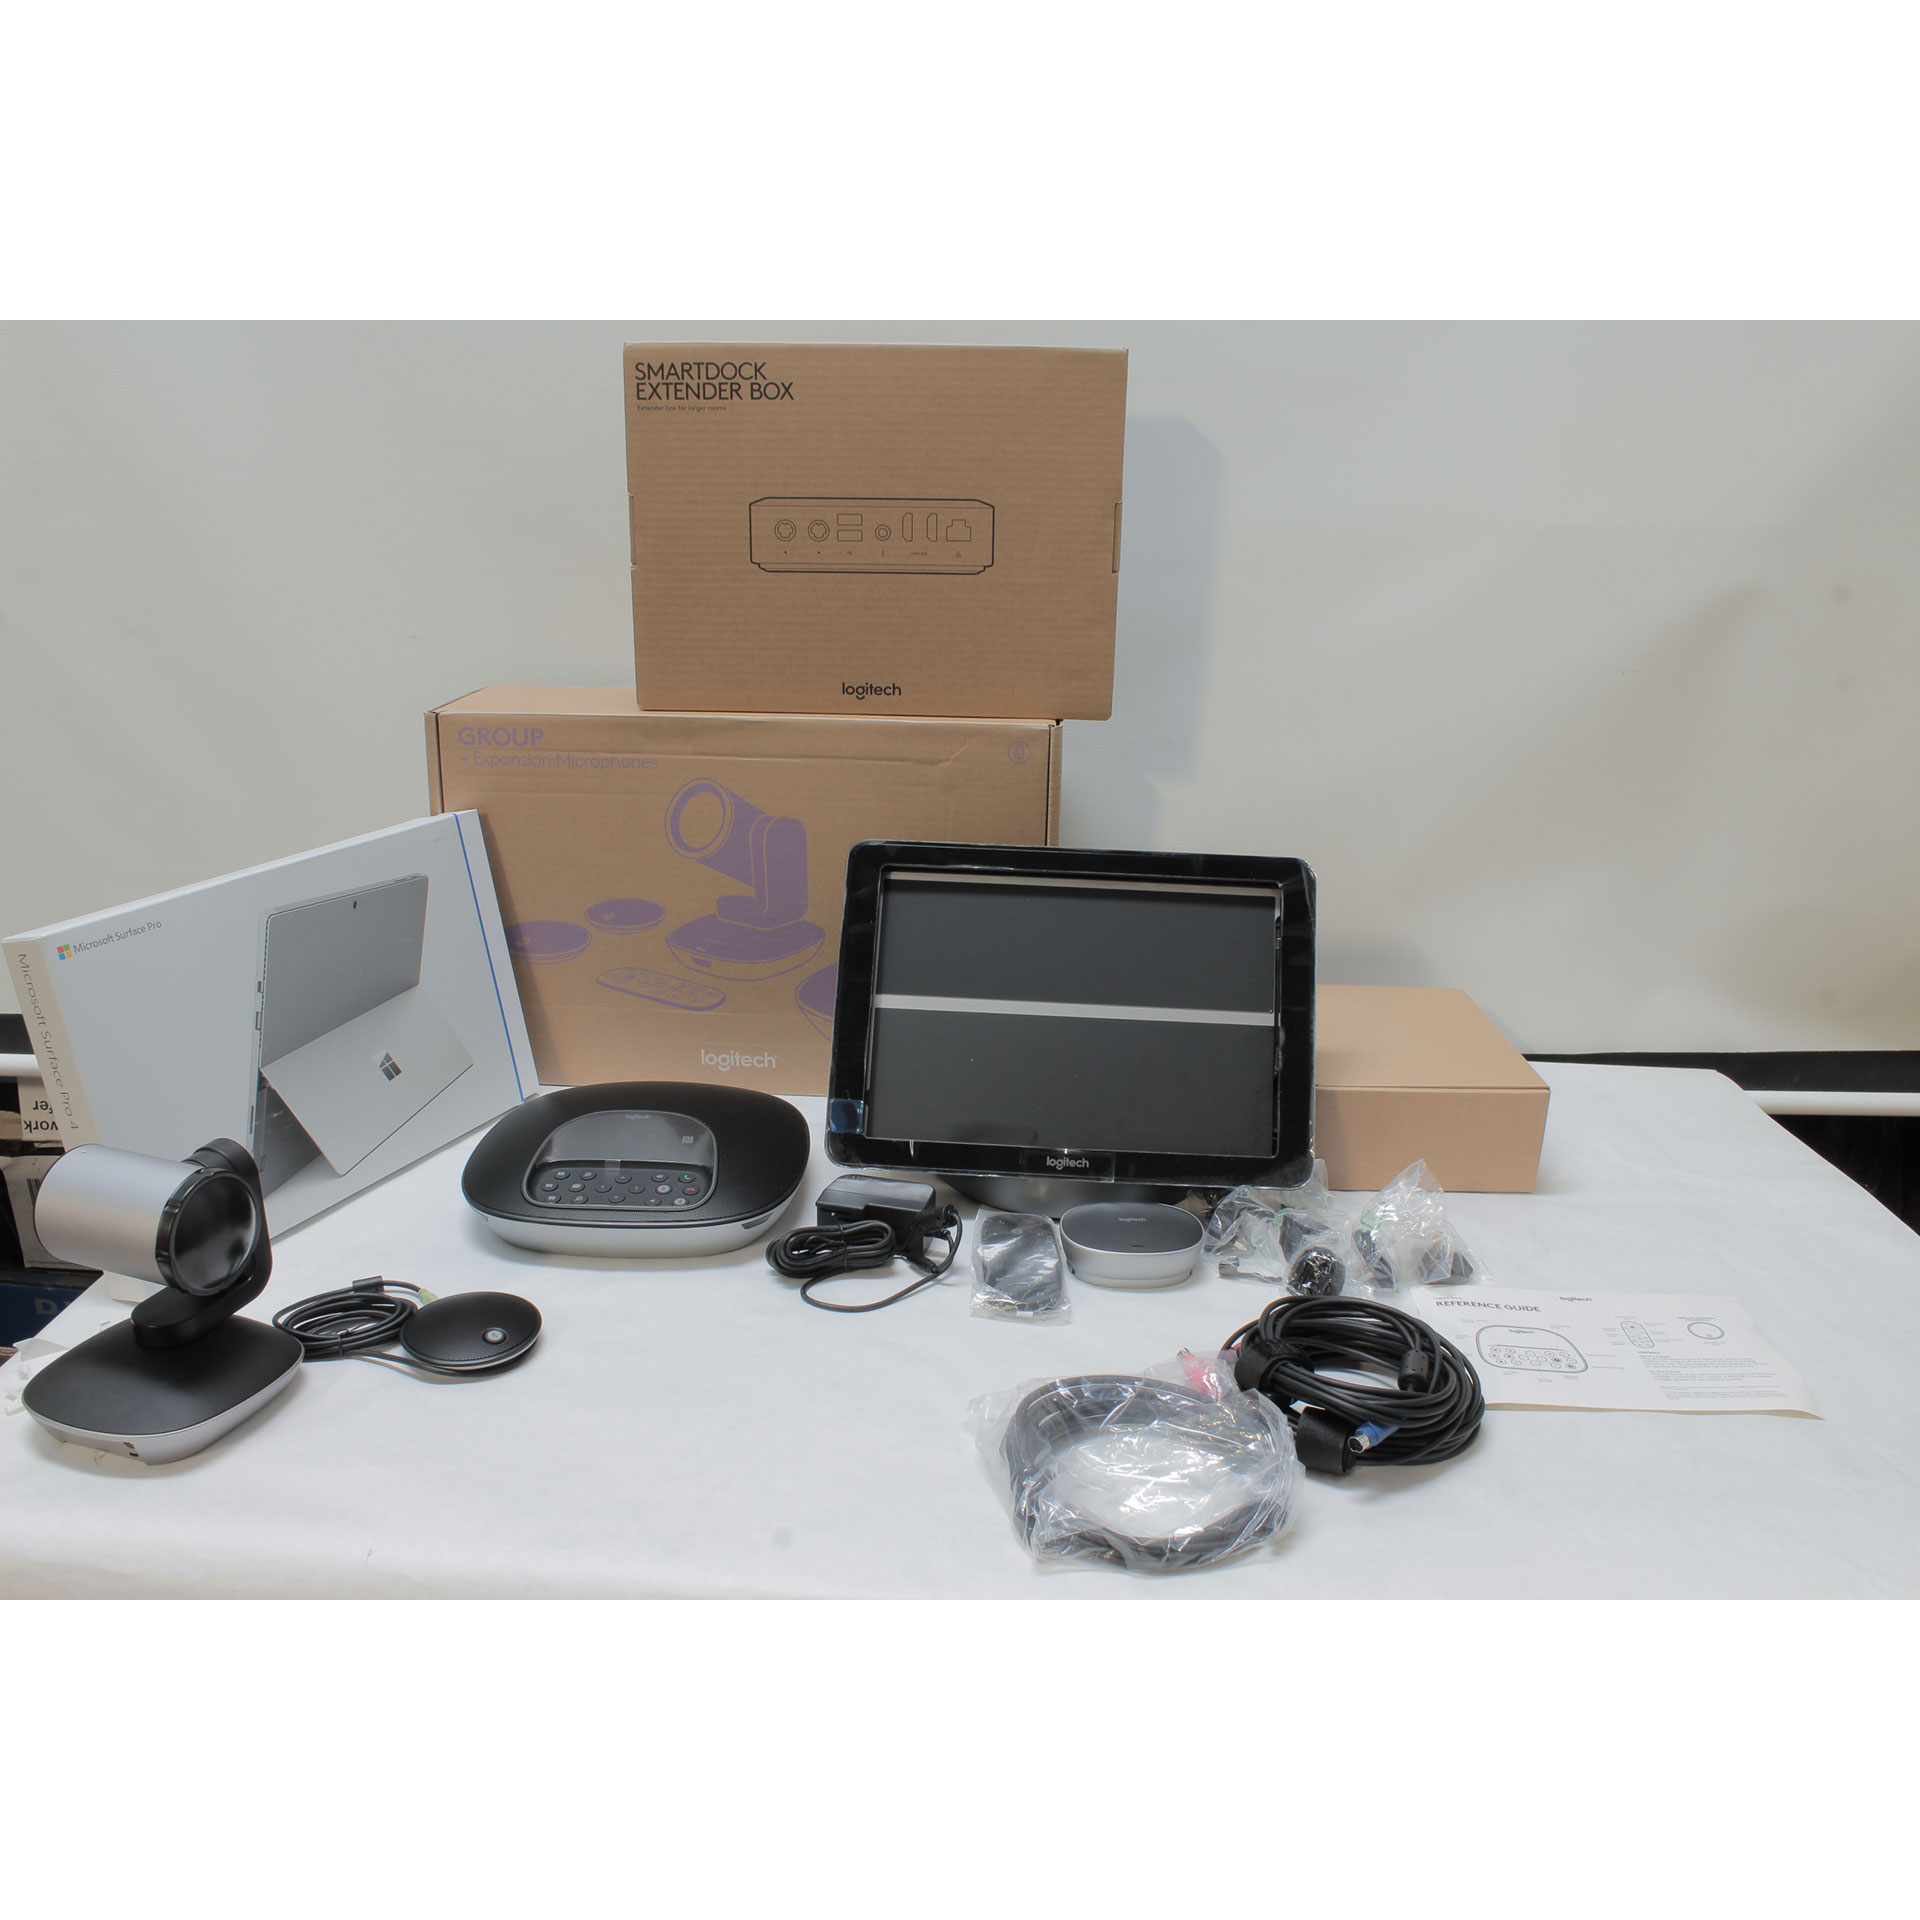 Logitech SMARTSRSLGROOM Skype Video Conferencing Kit Surface Pro